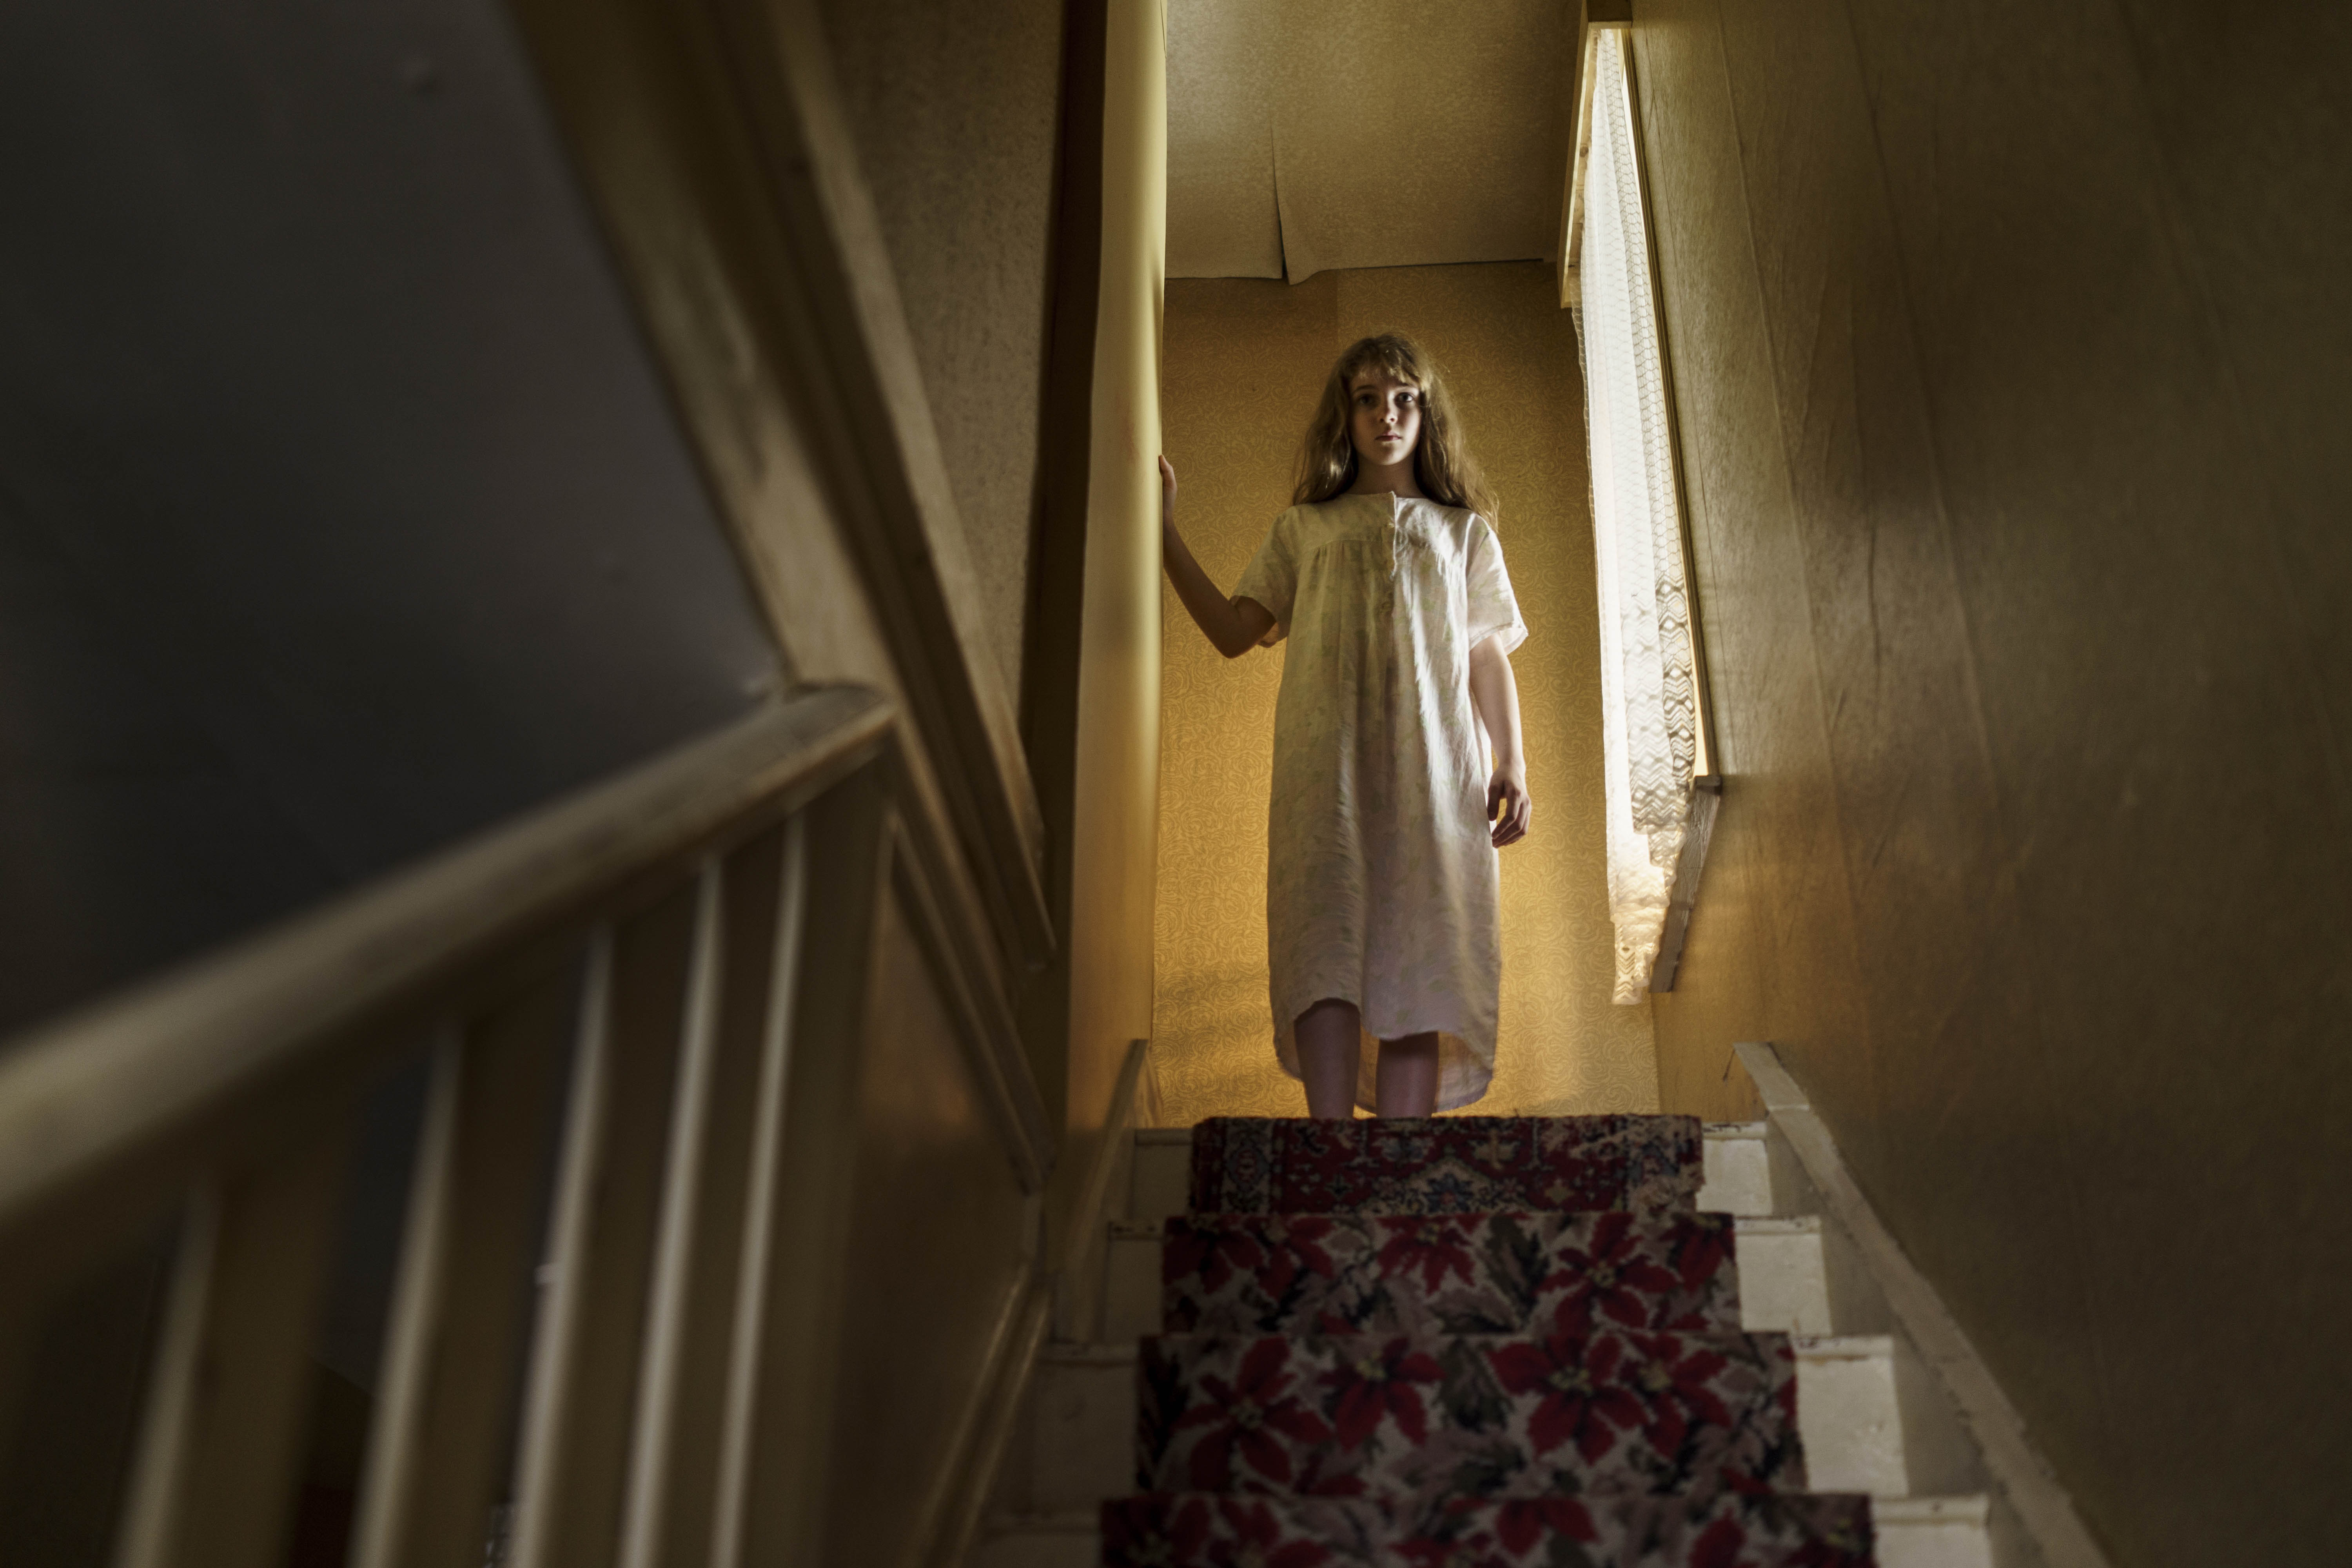 The Enfield Haunting left viewers terrified, unable to sleep and wanting more